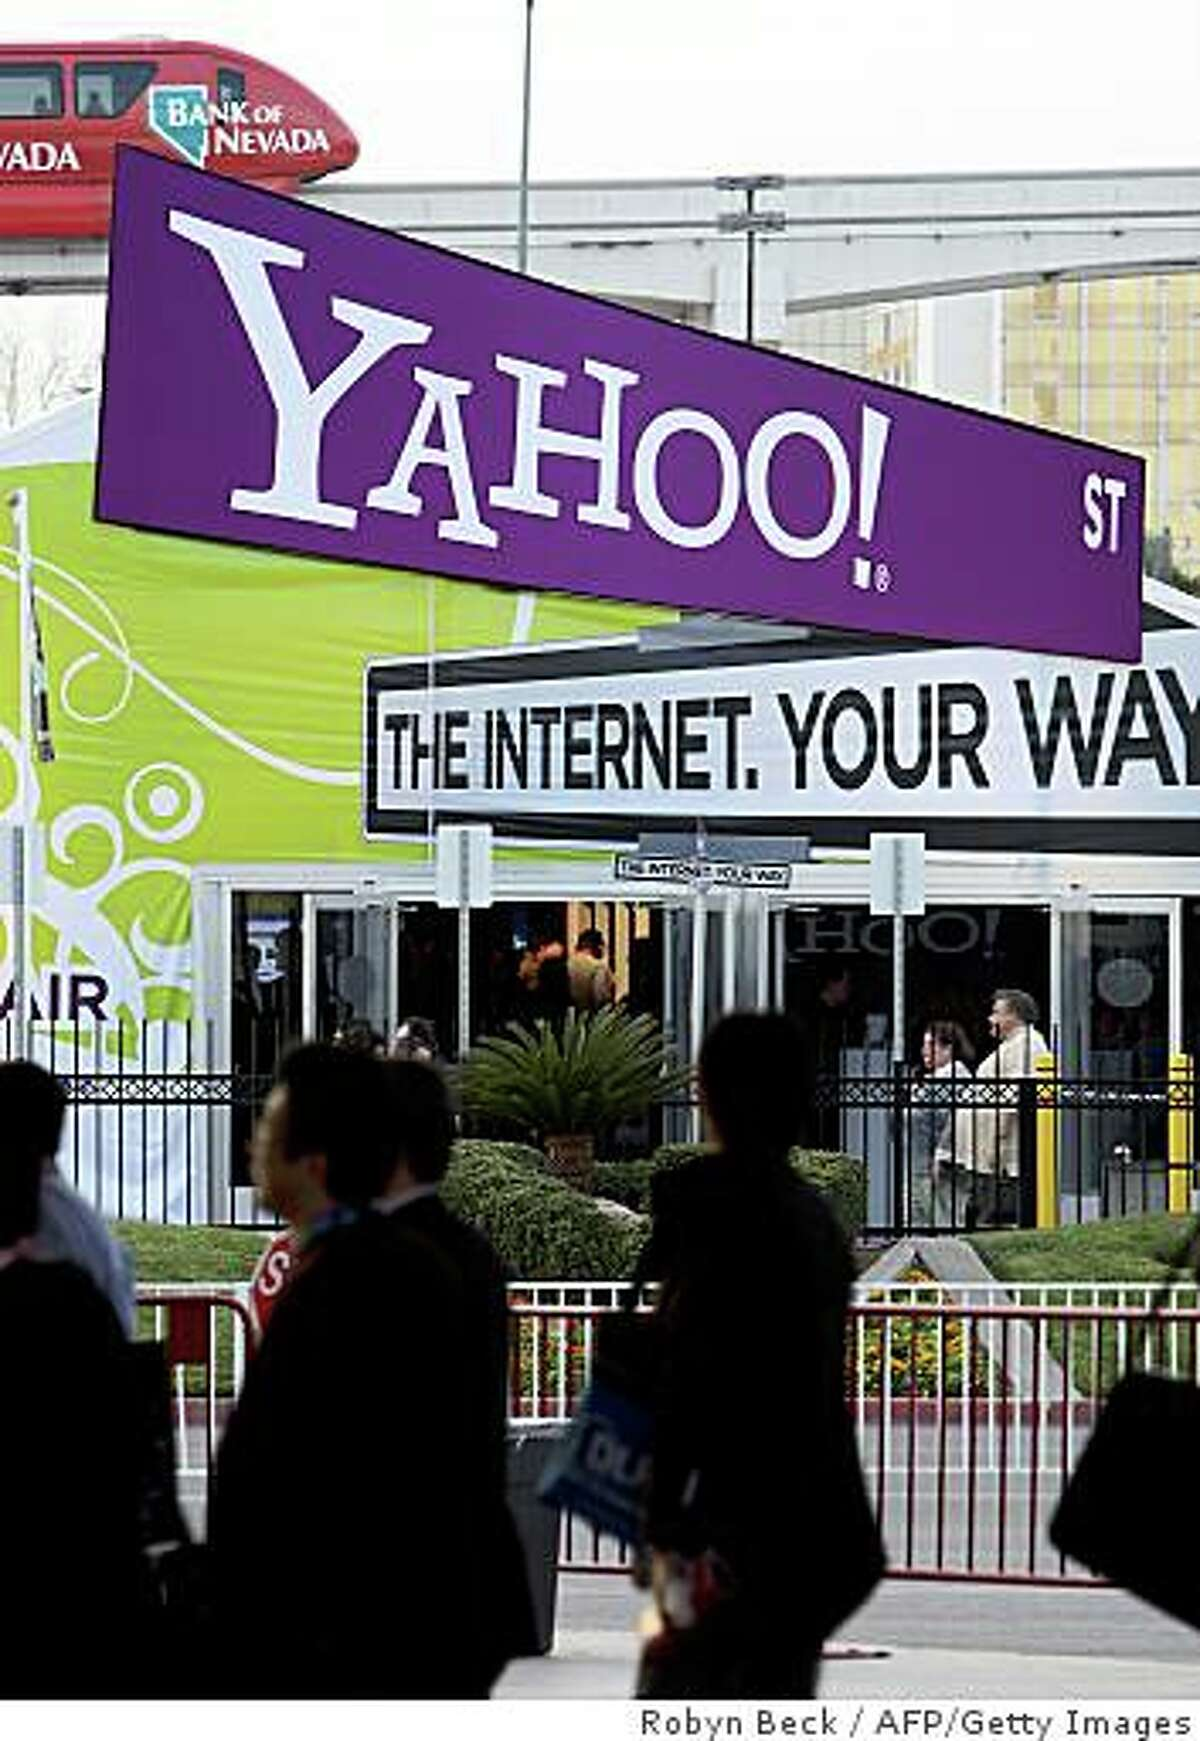 While Northern Californians may think they own the Internet, thanks to widely known locals like Yahoo and Google, Silicon Valley came in fourth in employment with 18,100 Internet jobs behind New York (26,300), Dallas-Fort Worth (20,900) and Washington (20,300).